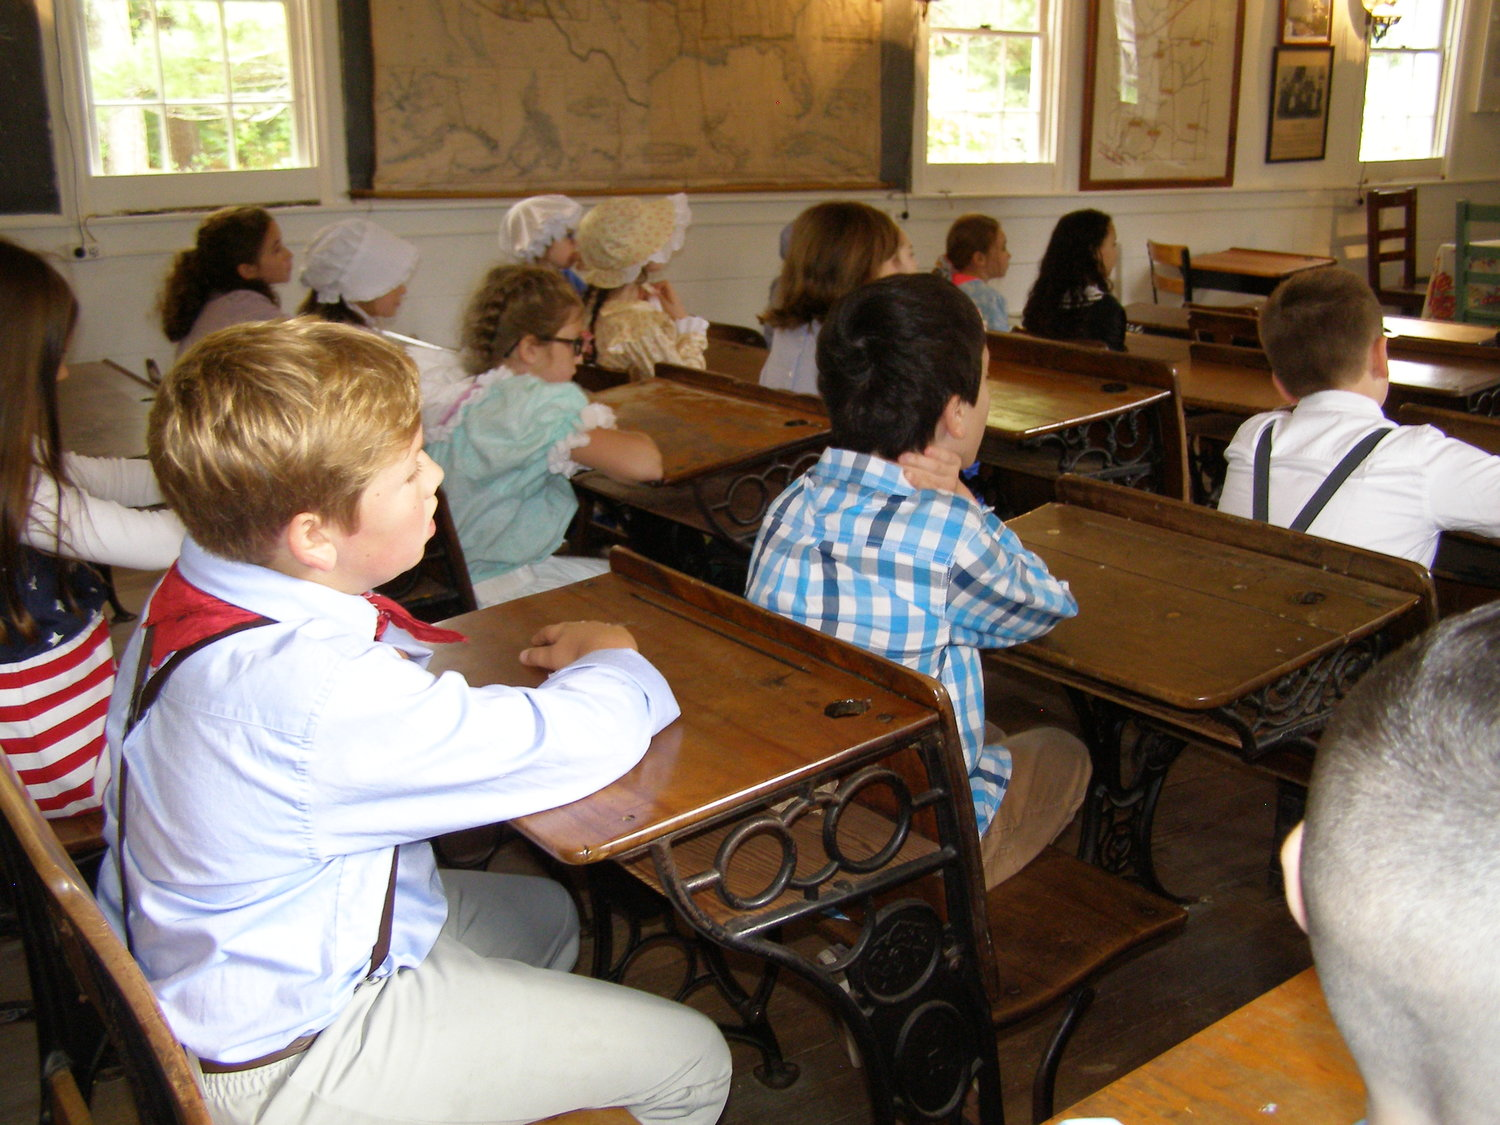 Third grade Students from Palmer River School seated and ready for the day's instruction